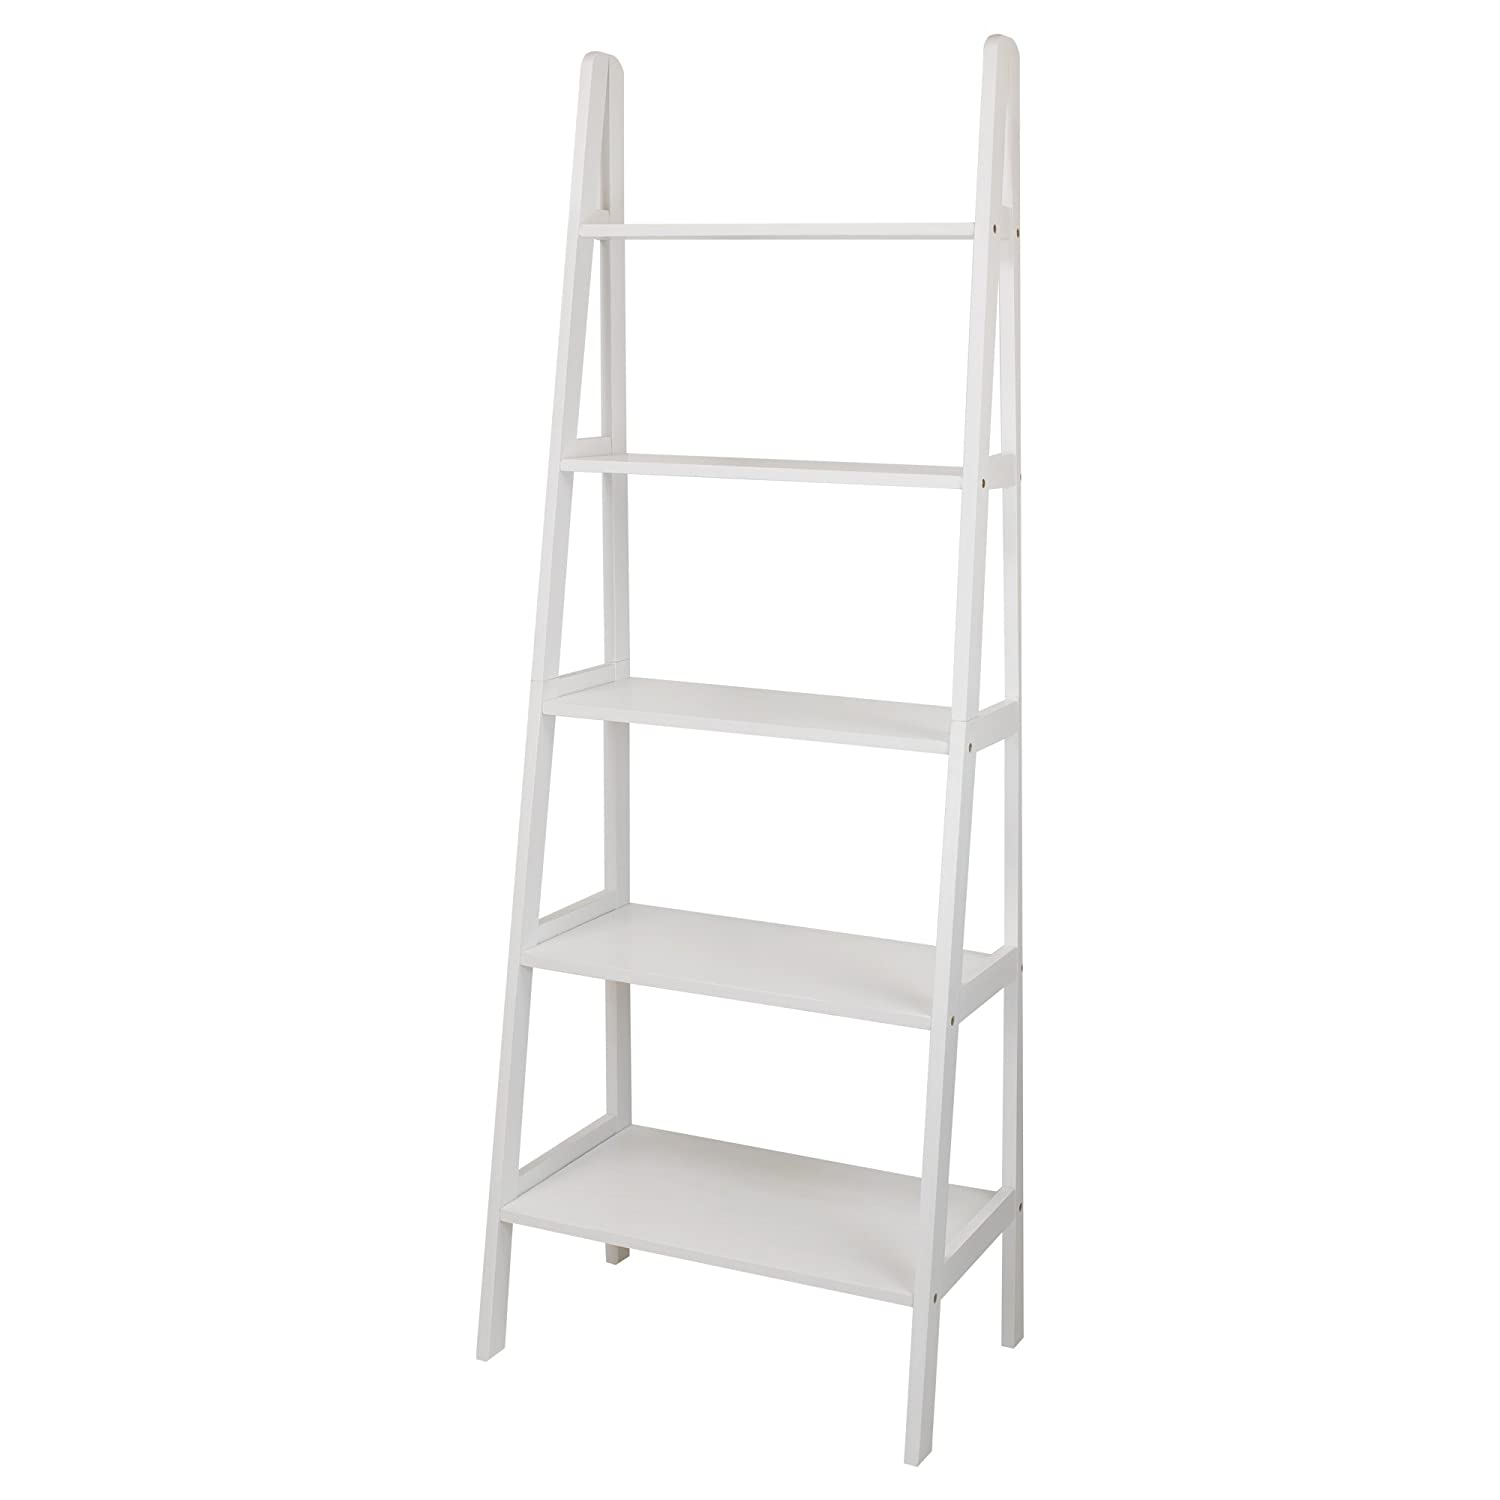 bookcase to search espresso house a greatest google shelf of build how bookcases ladder pyramid leaning